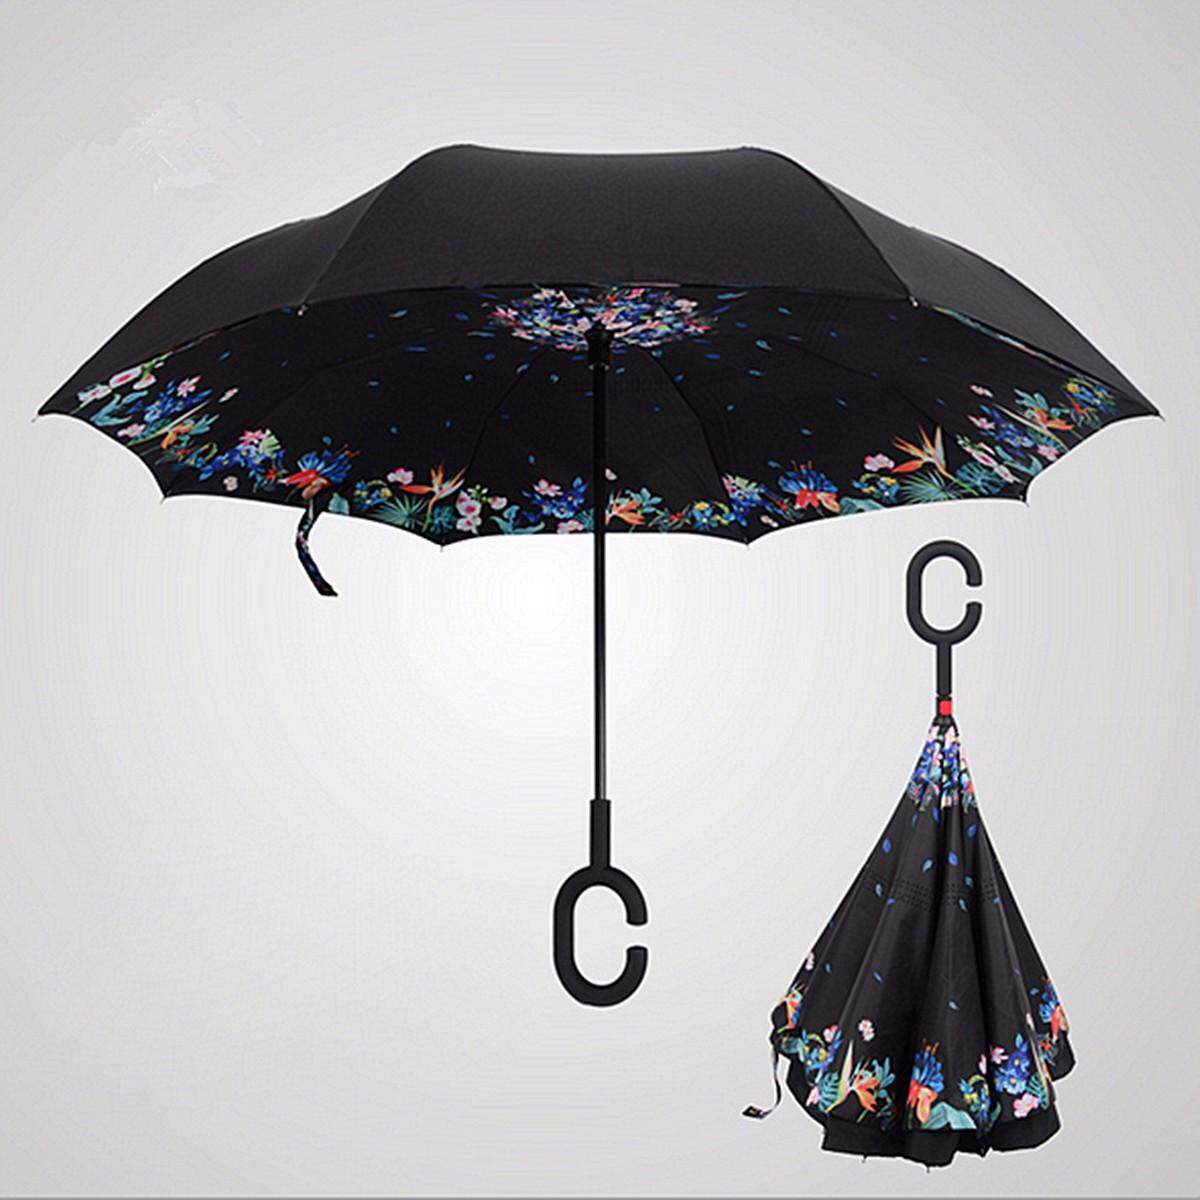 Windproof Upside Down Reverse Umbrella C-Handle Double Layer Inside-Out Inverted - Intl By Audew.